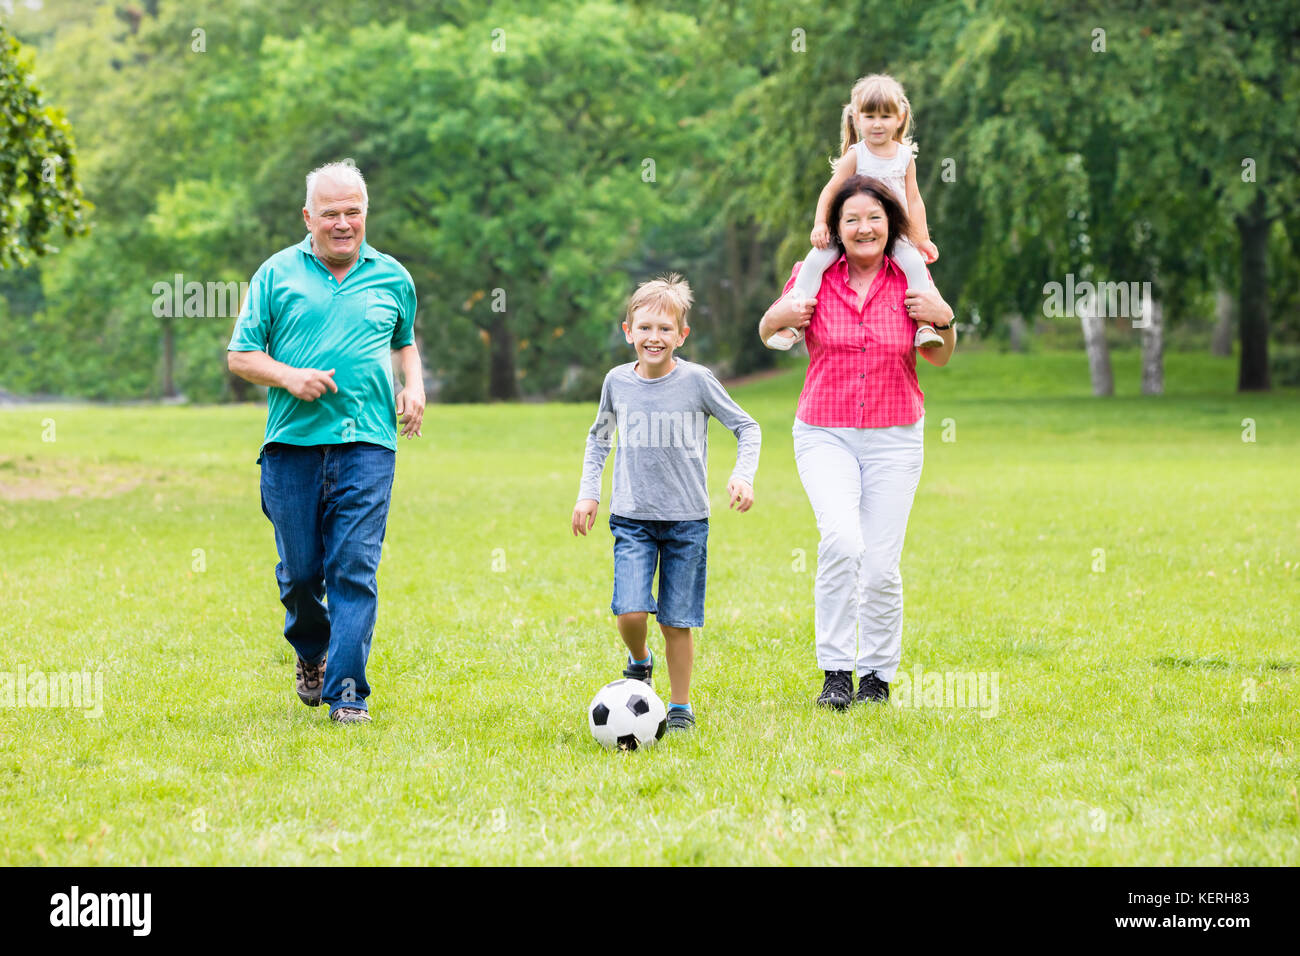 Happy Family Playing Soccer Game With Grandchildren Together In Park. Running For Ball Stock Photo